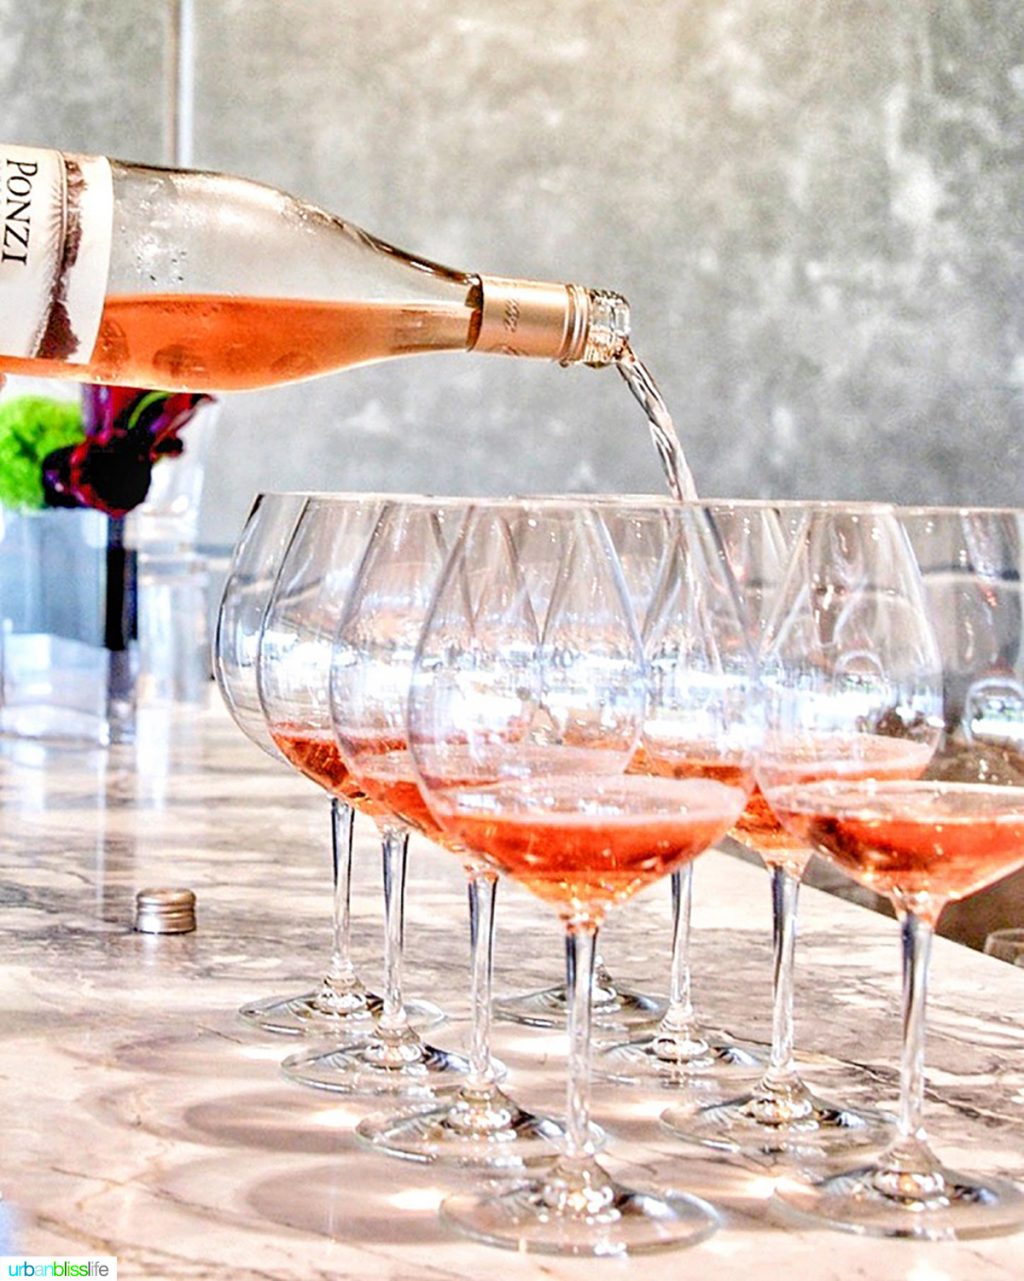 Ponzi rose wine pouring into wine glasses